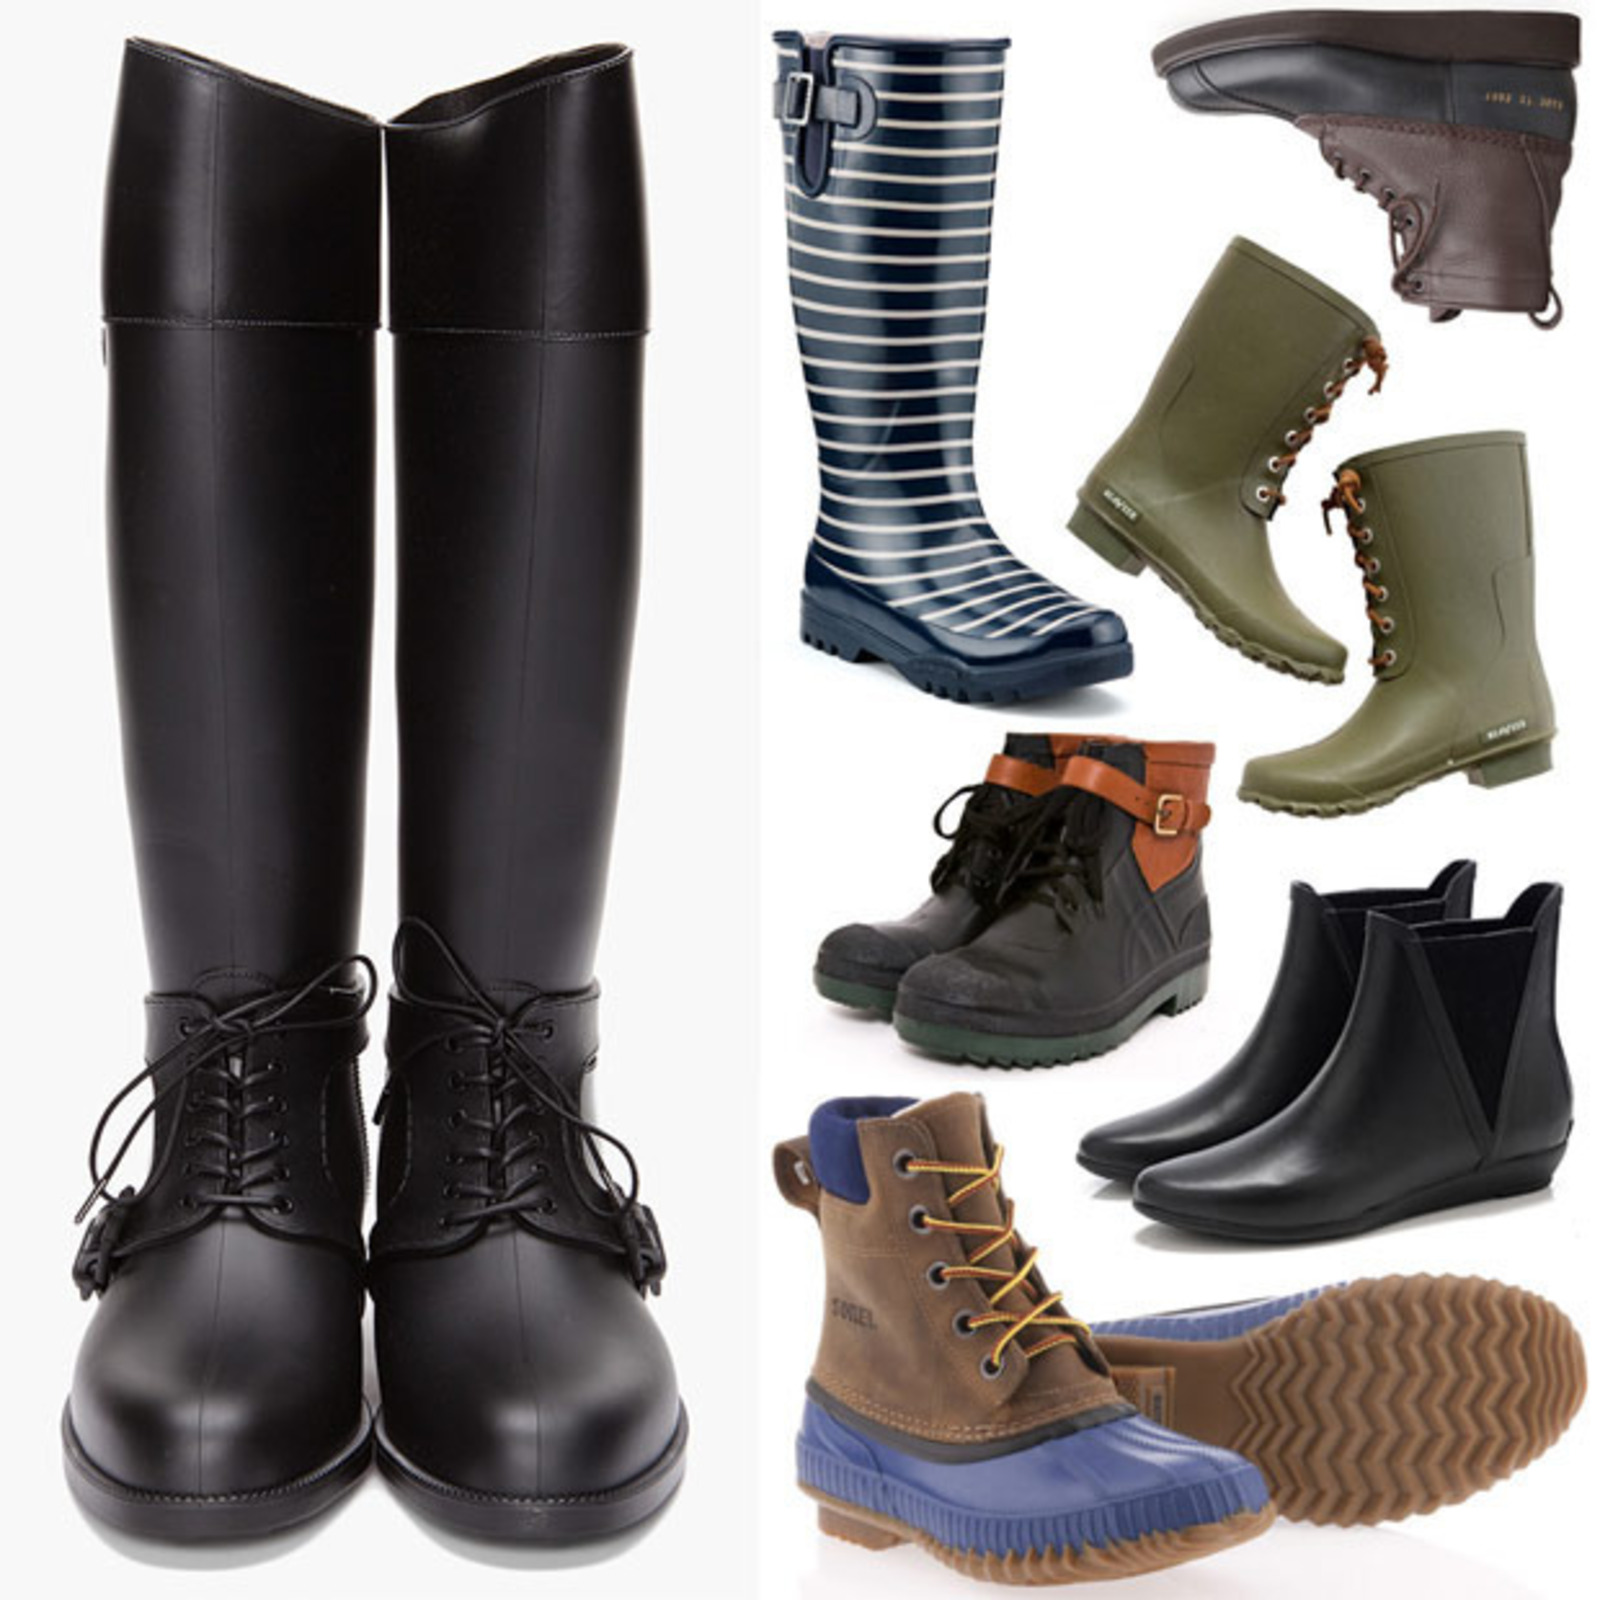 Twelve Pairs of Ladies&39 Rain Boots - Cool Hunting